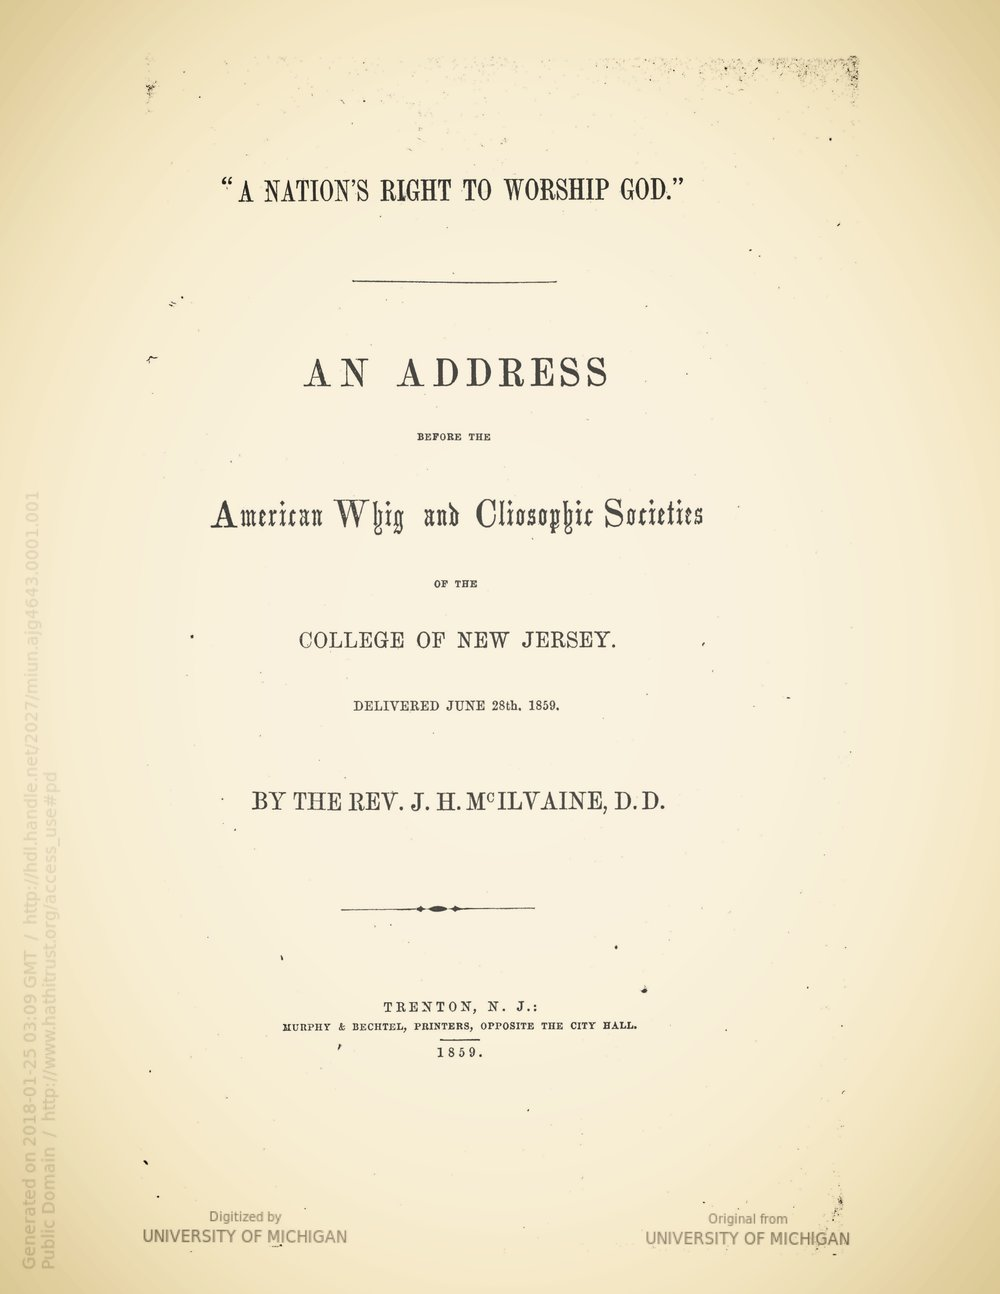 McIlvaine, Joshua Hall, A Nation's Right to Worship God Title Page.jpg